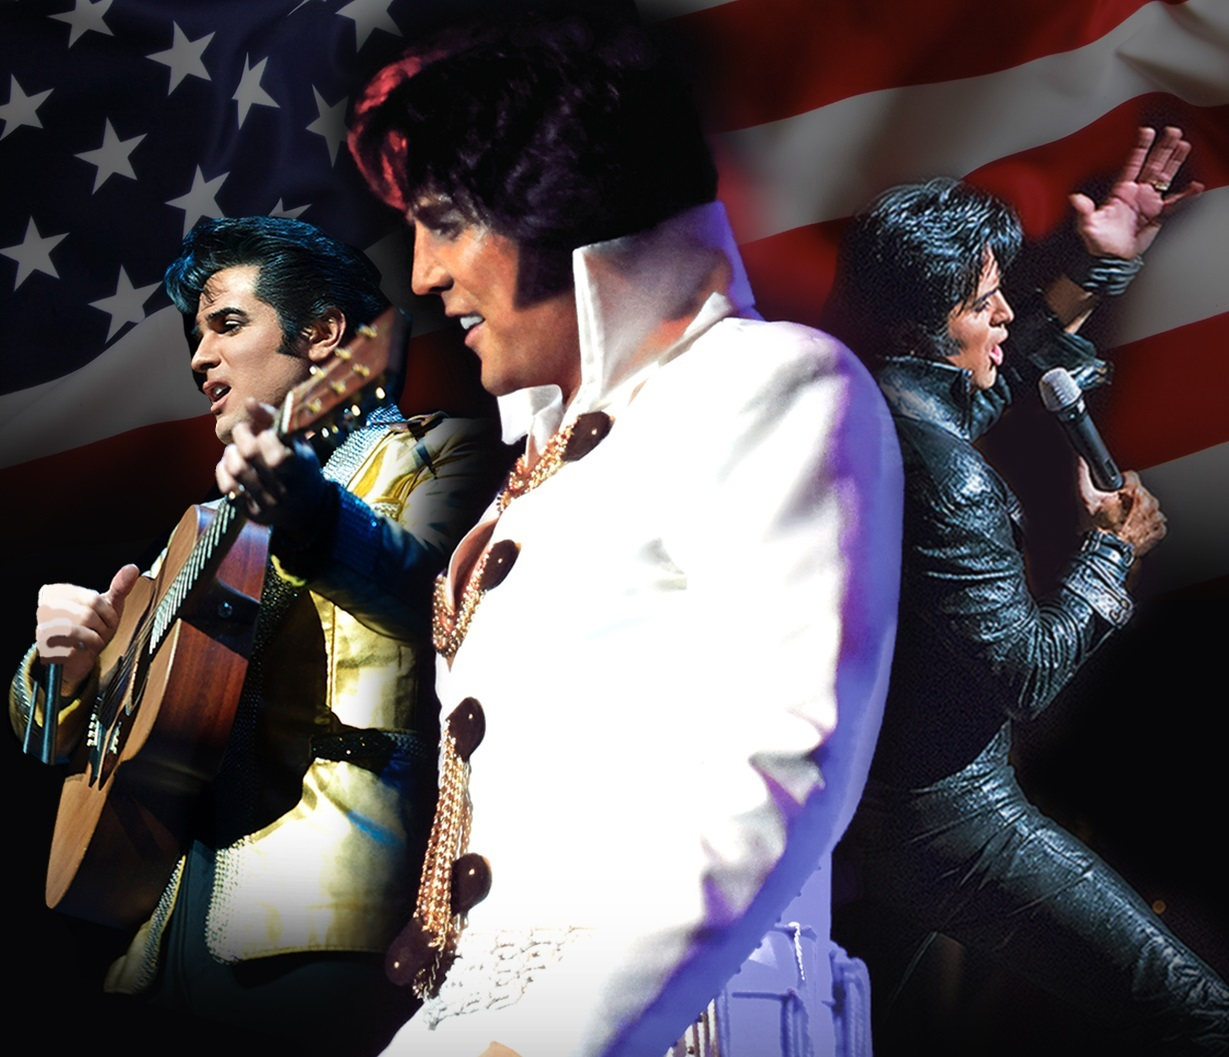 The Elvis World Tour is coming to Cardiff next May